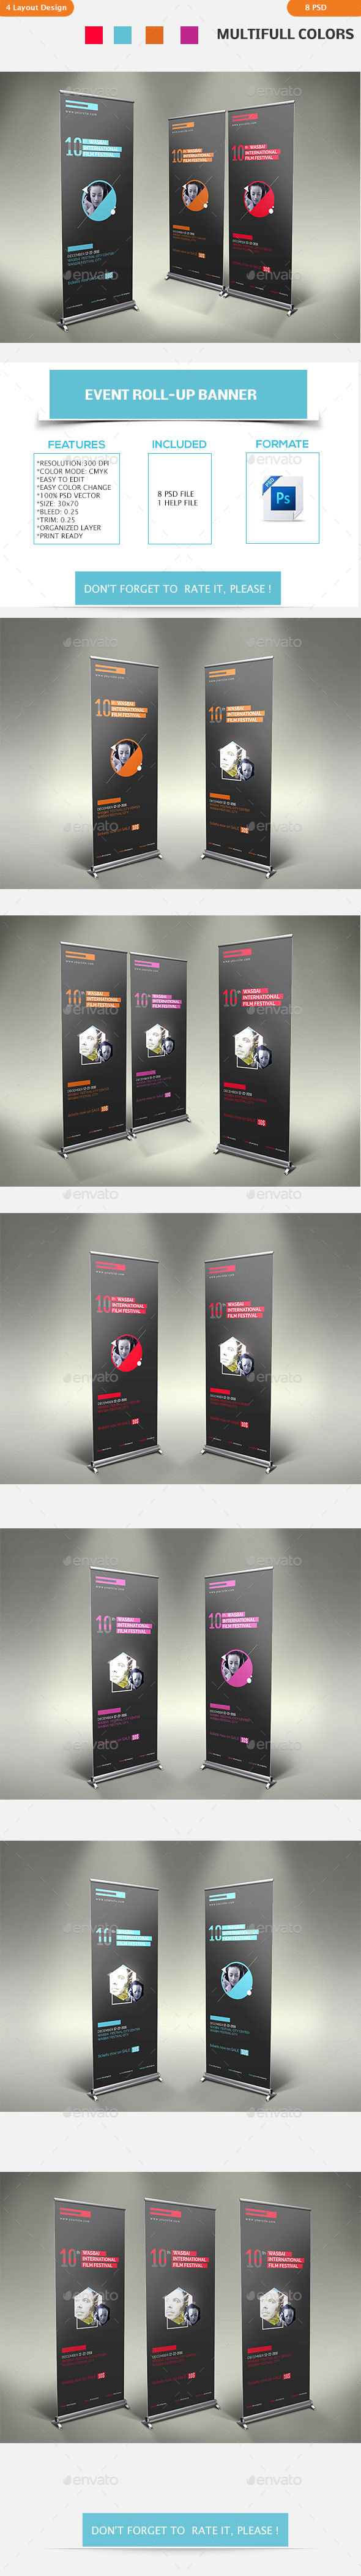 Event Roll-up Banner - Signage Print Templates